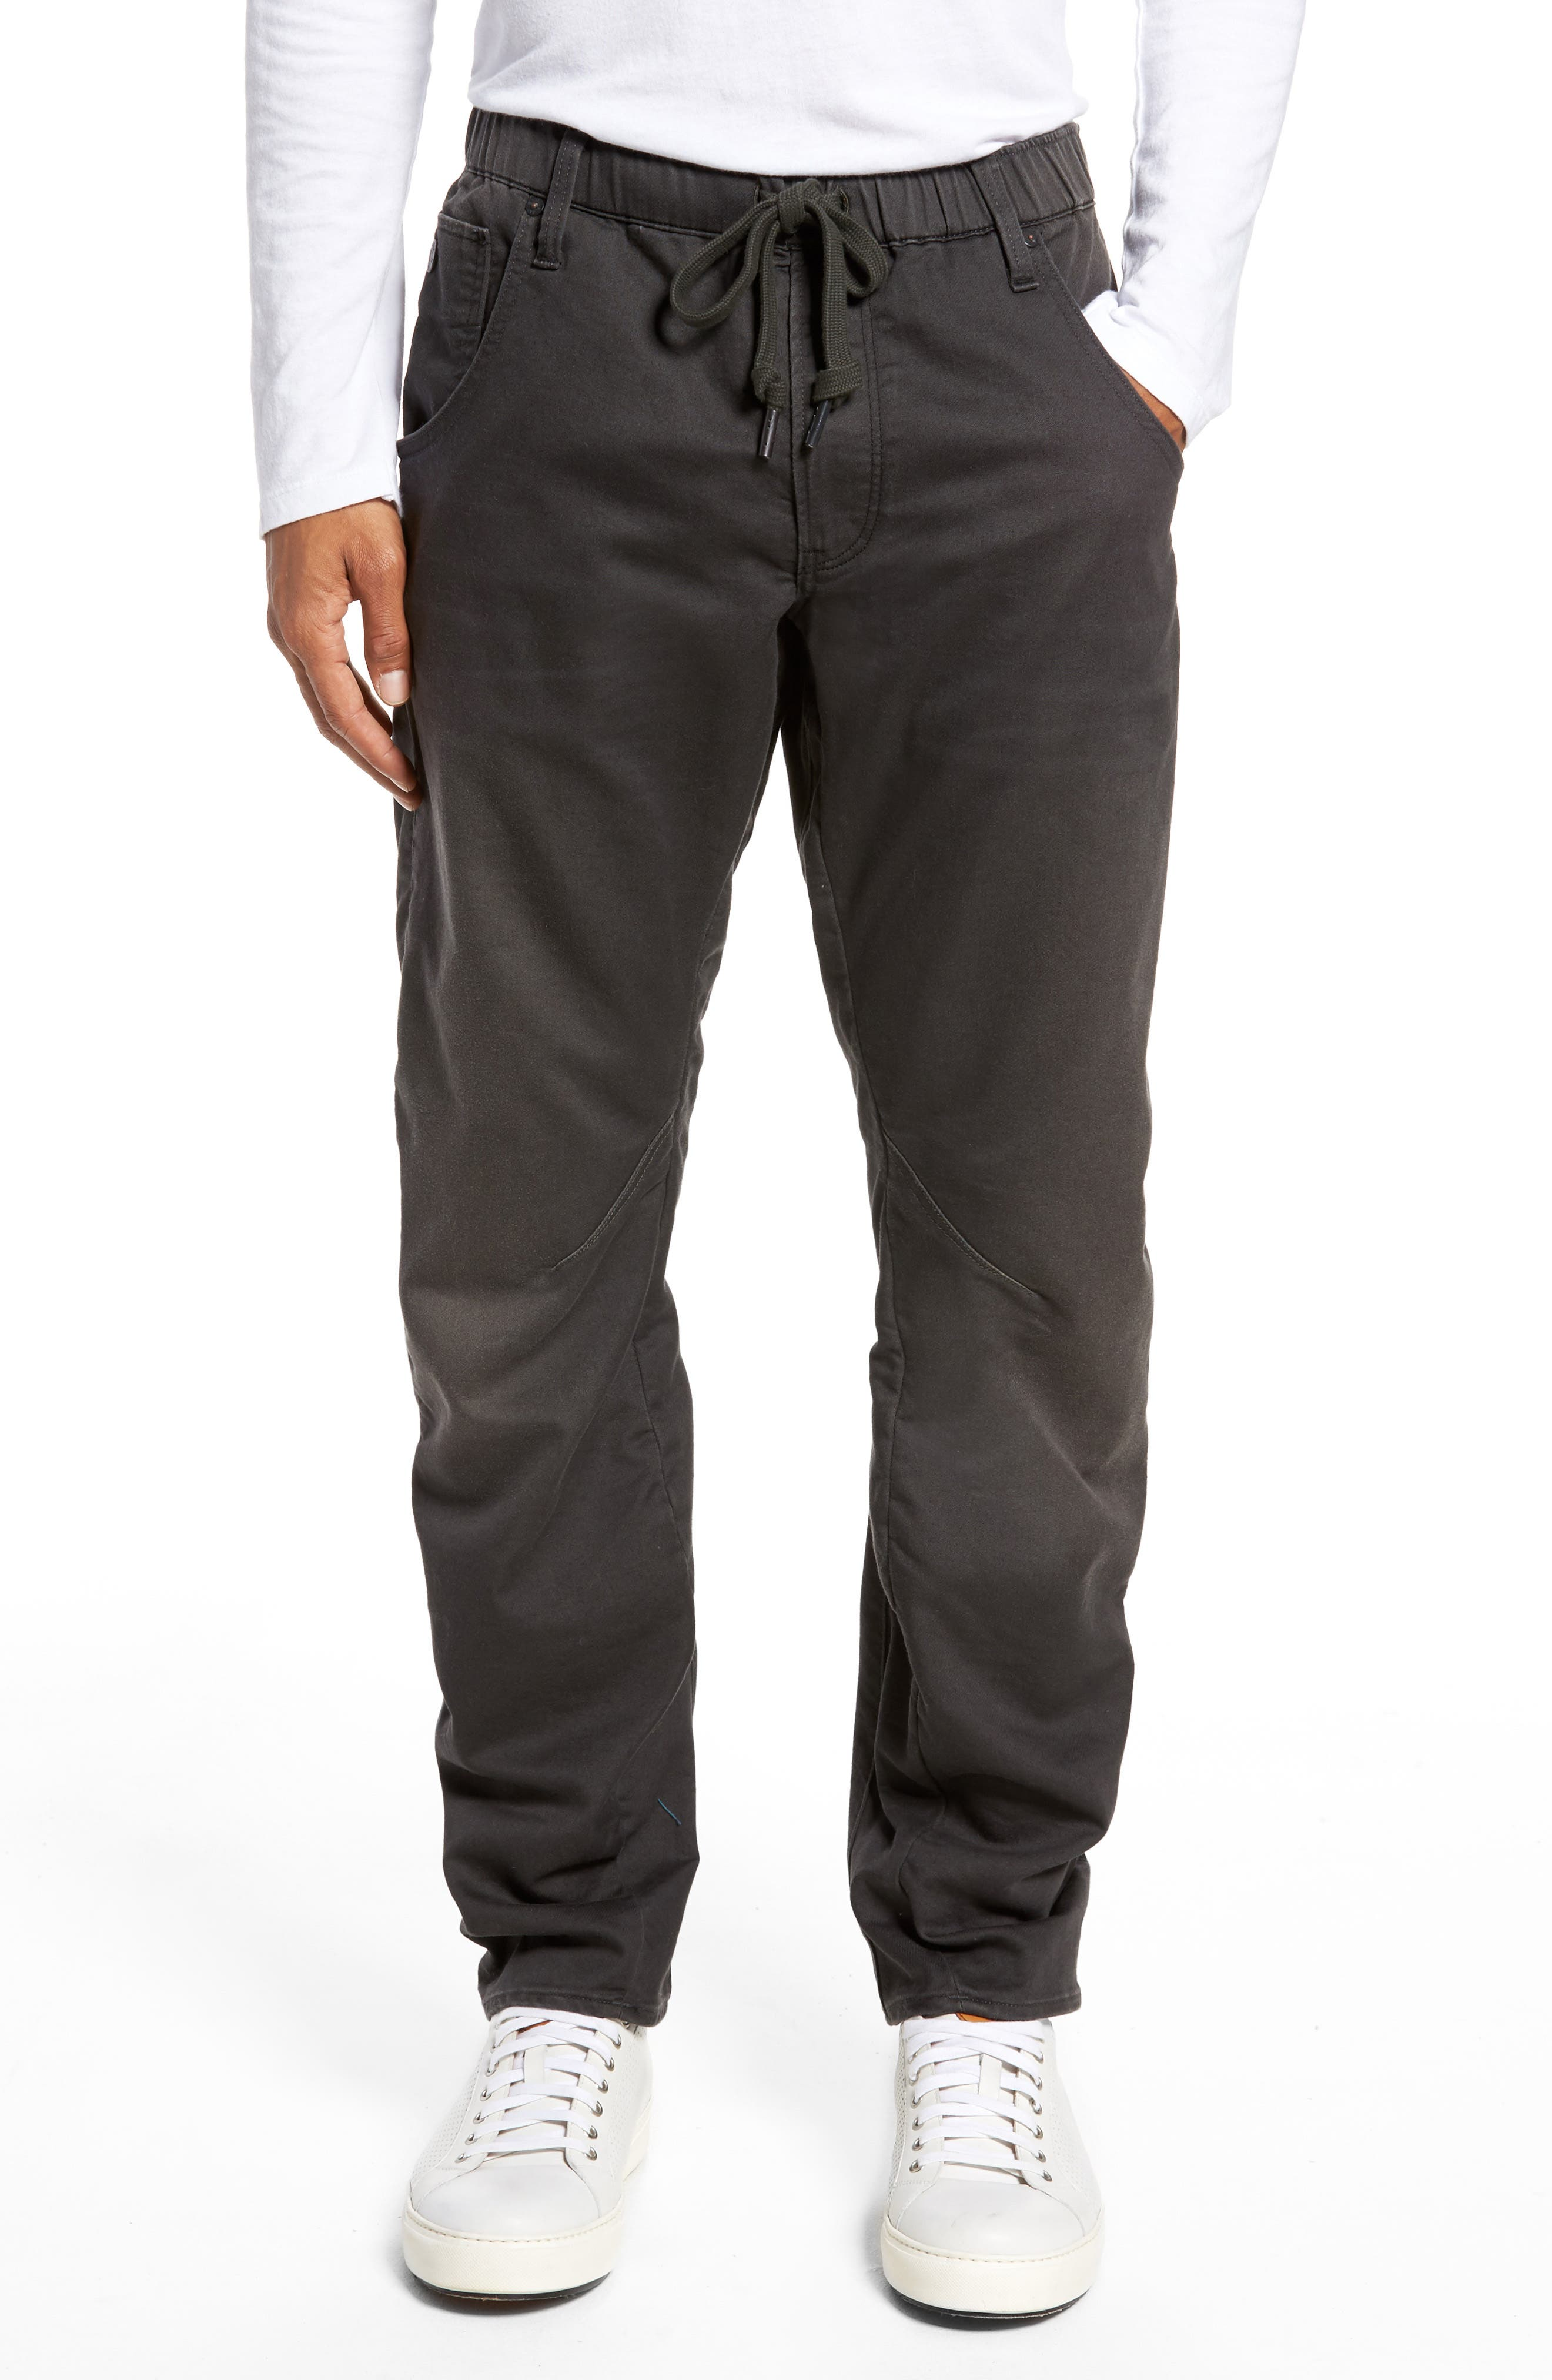 Arc 3D Sport Tapered Fit Jogger Pants,                         Main,                         color, Grey